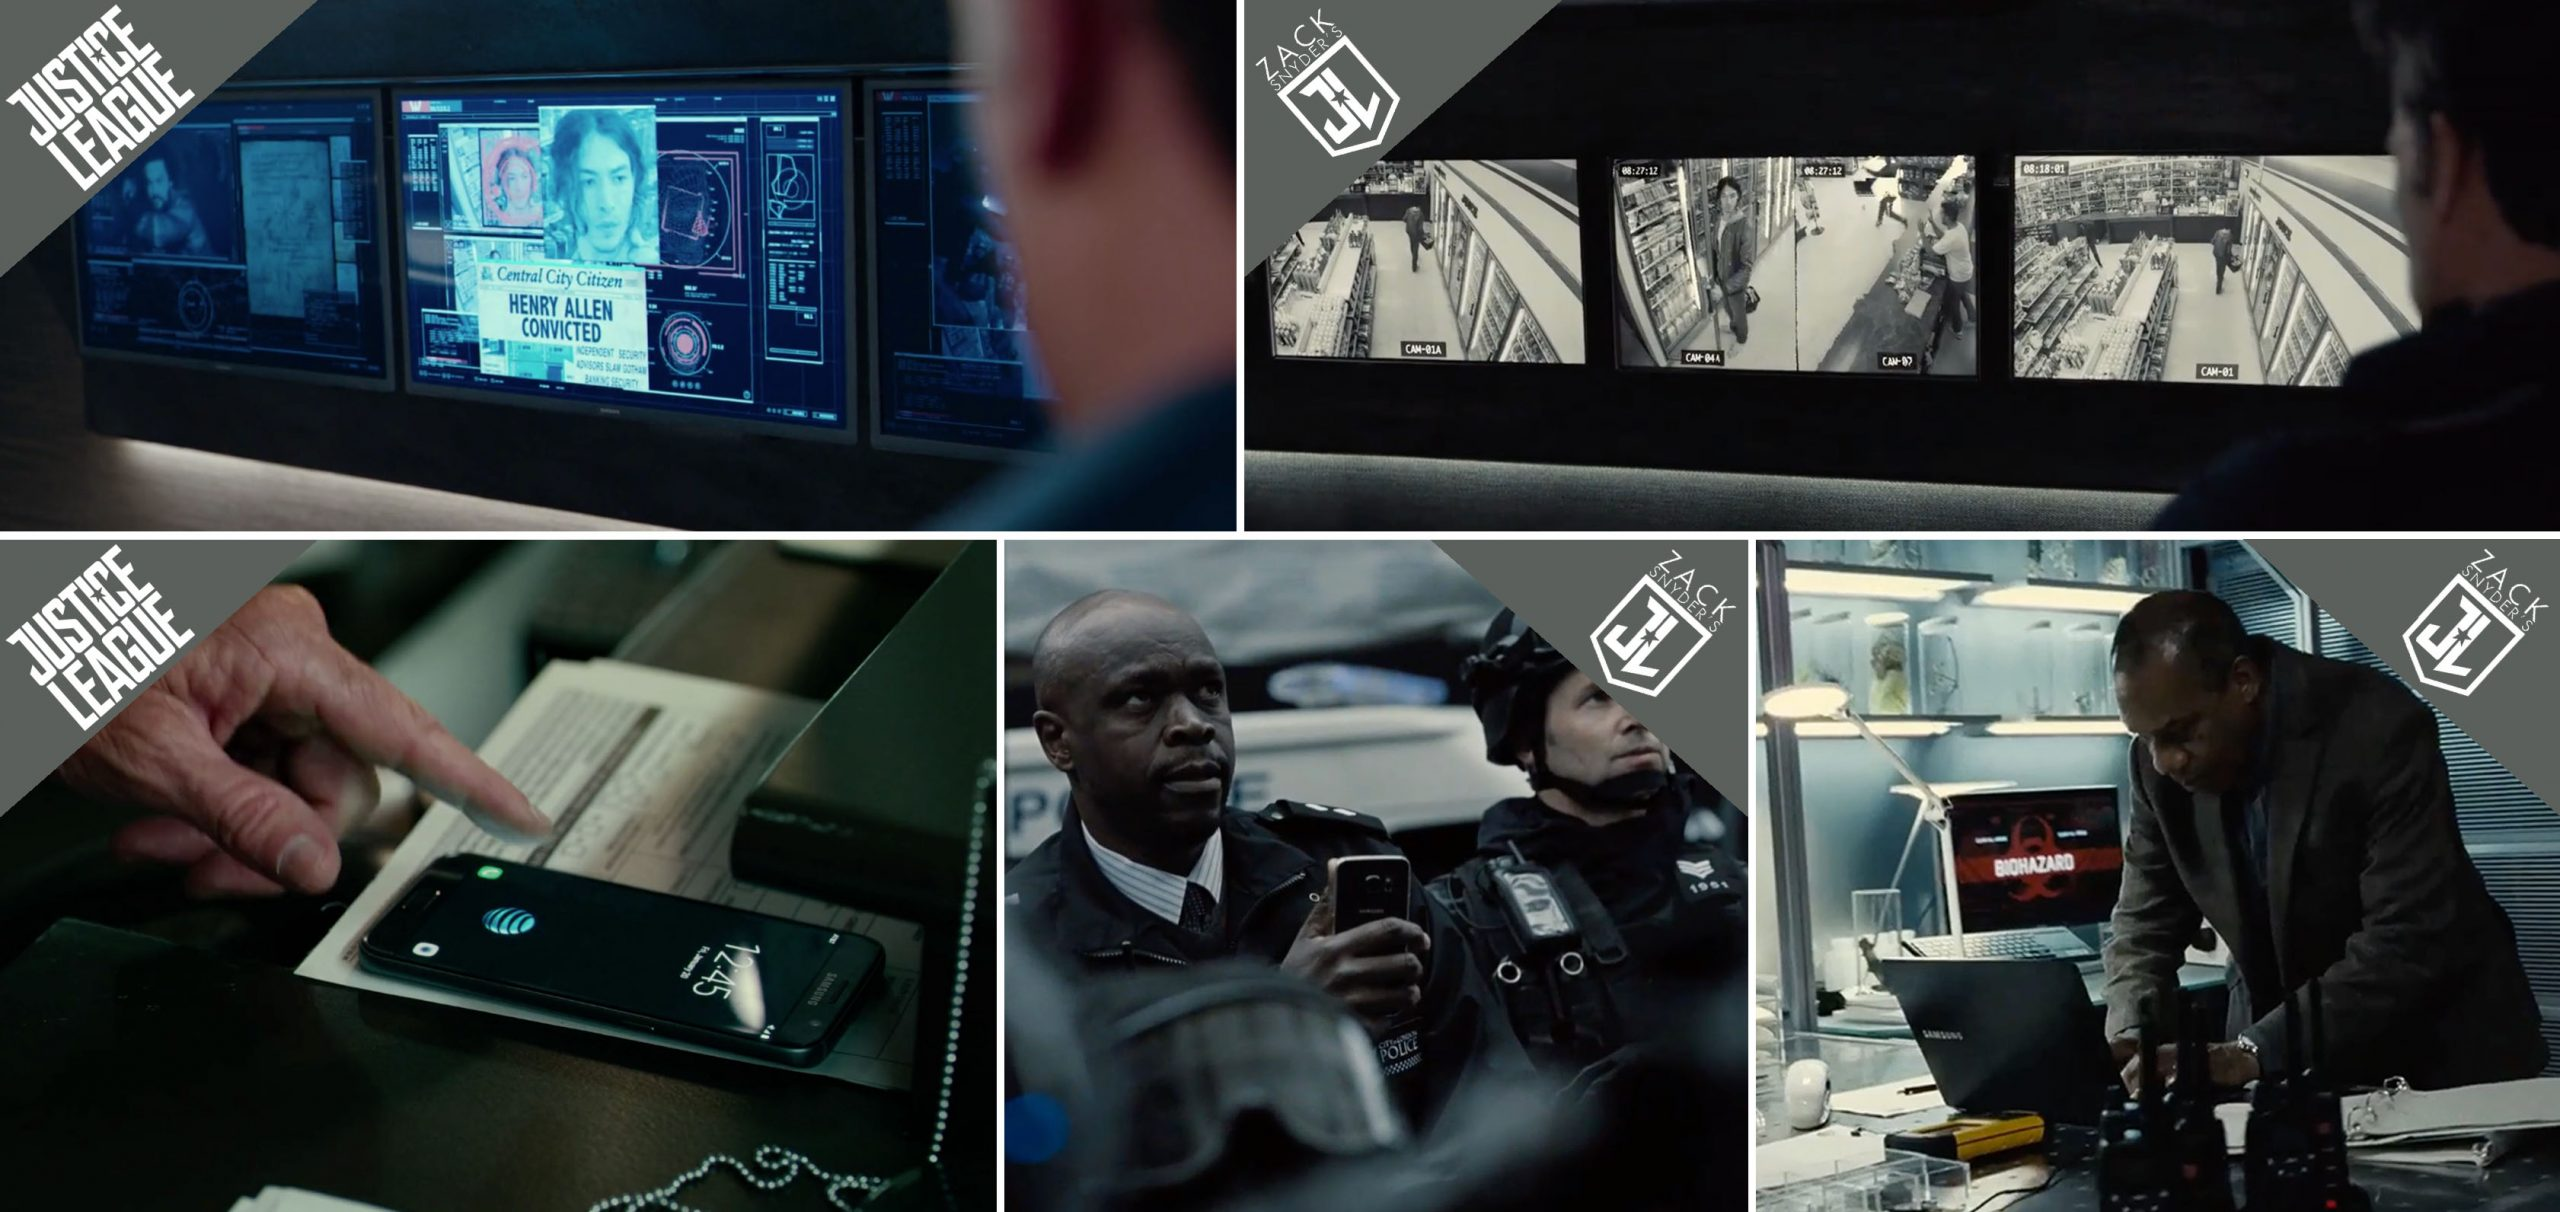 Samsung product placements in Zack Snyder's Justice league